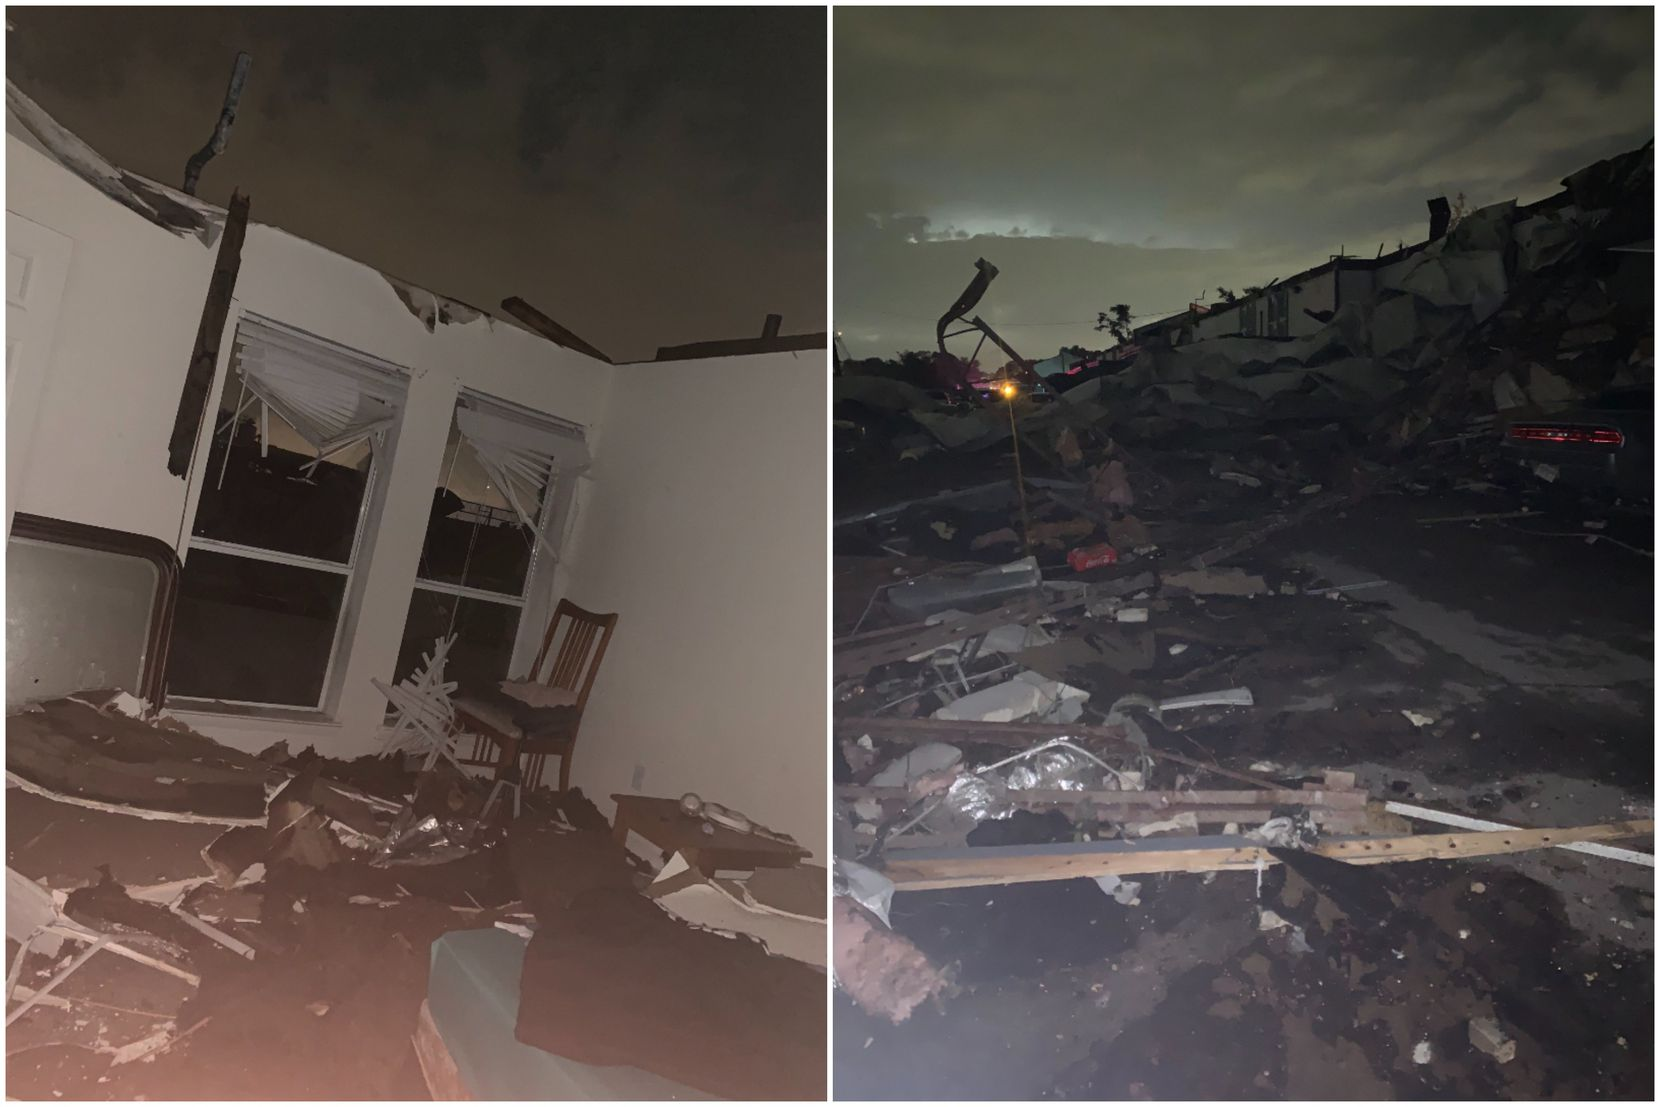 Rebecca Cruz, 20, took these photos after a tornado tore through her northwest Dallas apartment Sunday night. On the left is her spare bedroom, which had its roof torn off in the storm. On the right was her view standing outside her apartment.